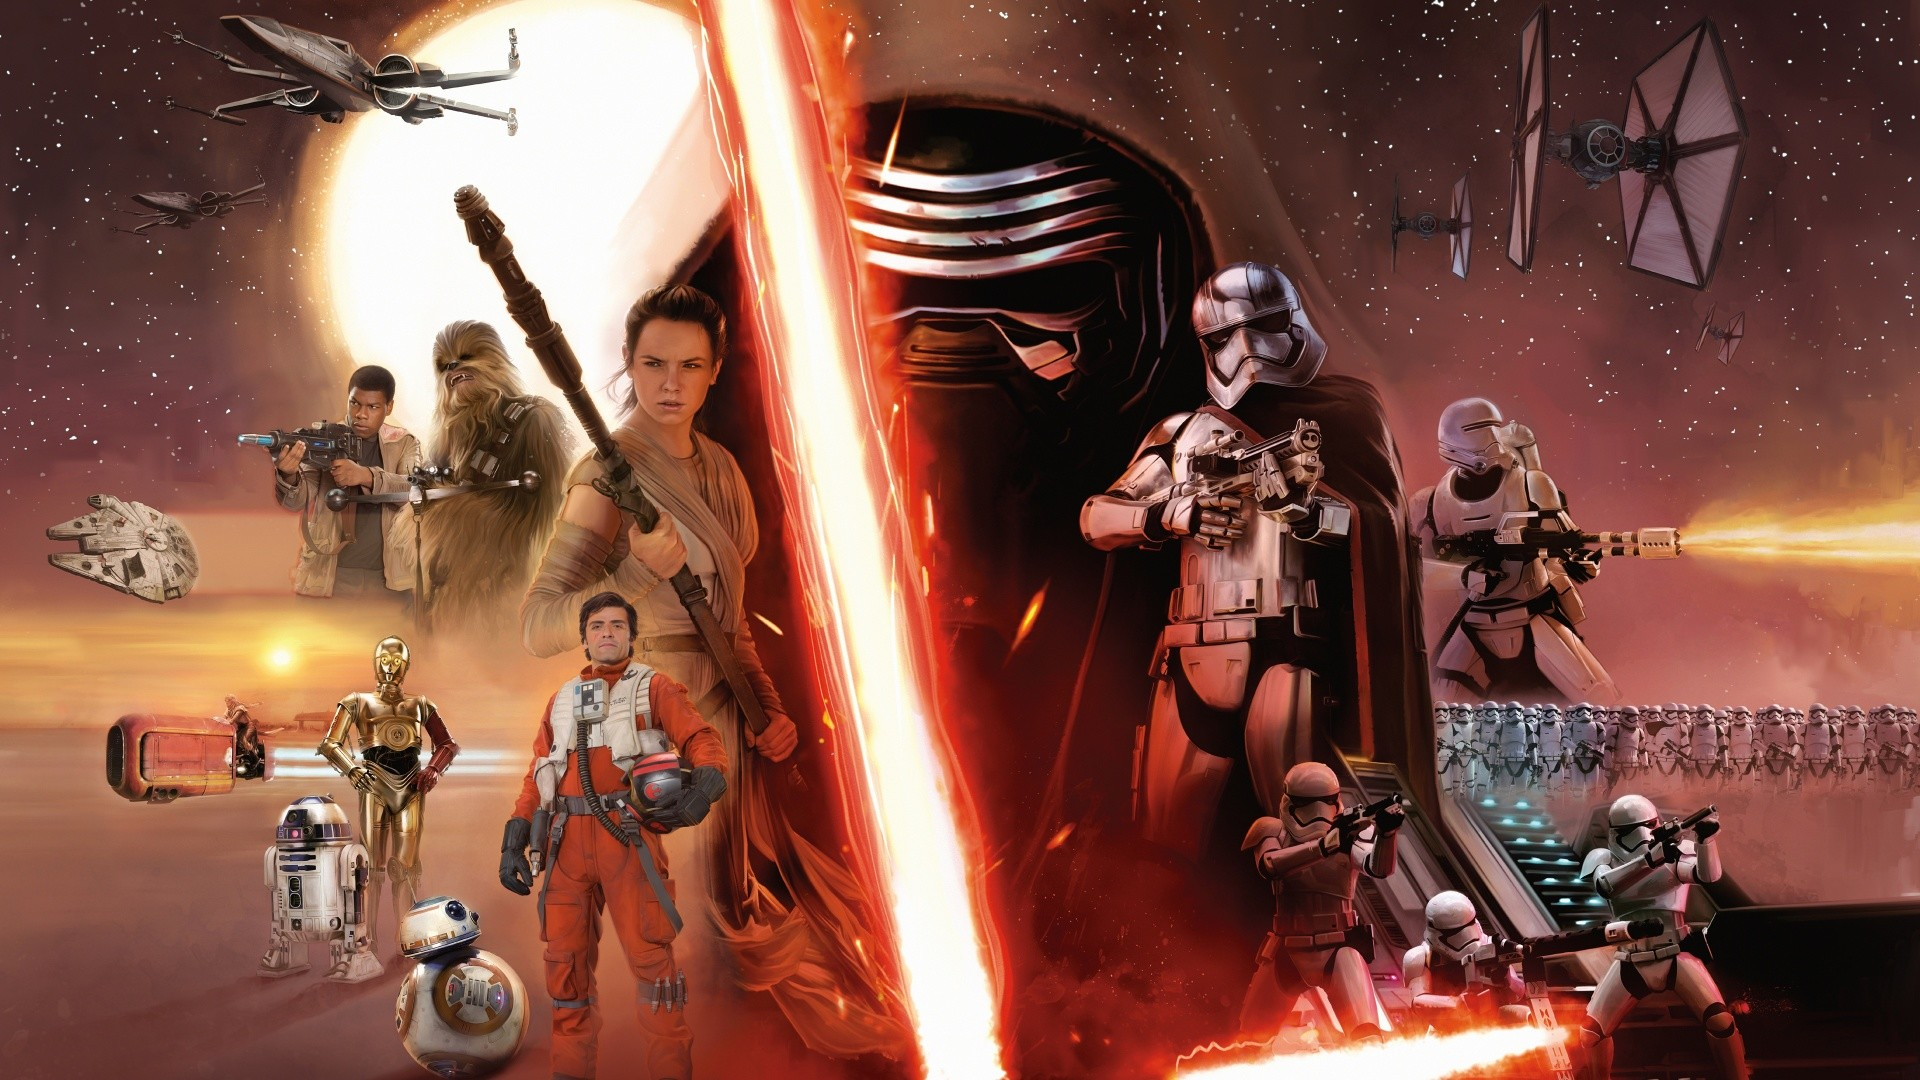 Star Wars Episode 7 The Force Awakens Wallpapers